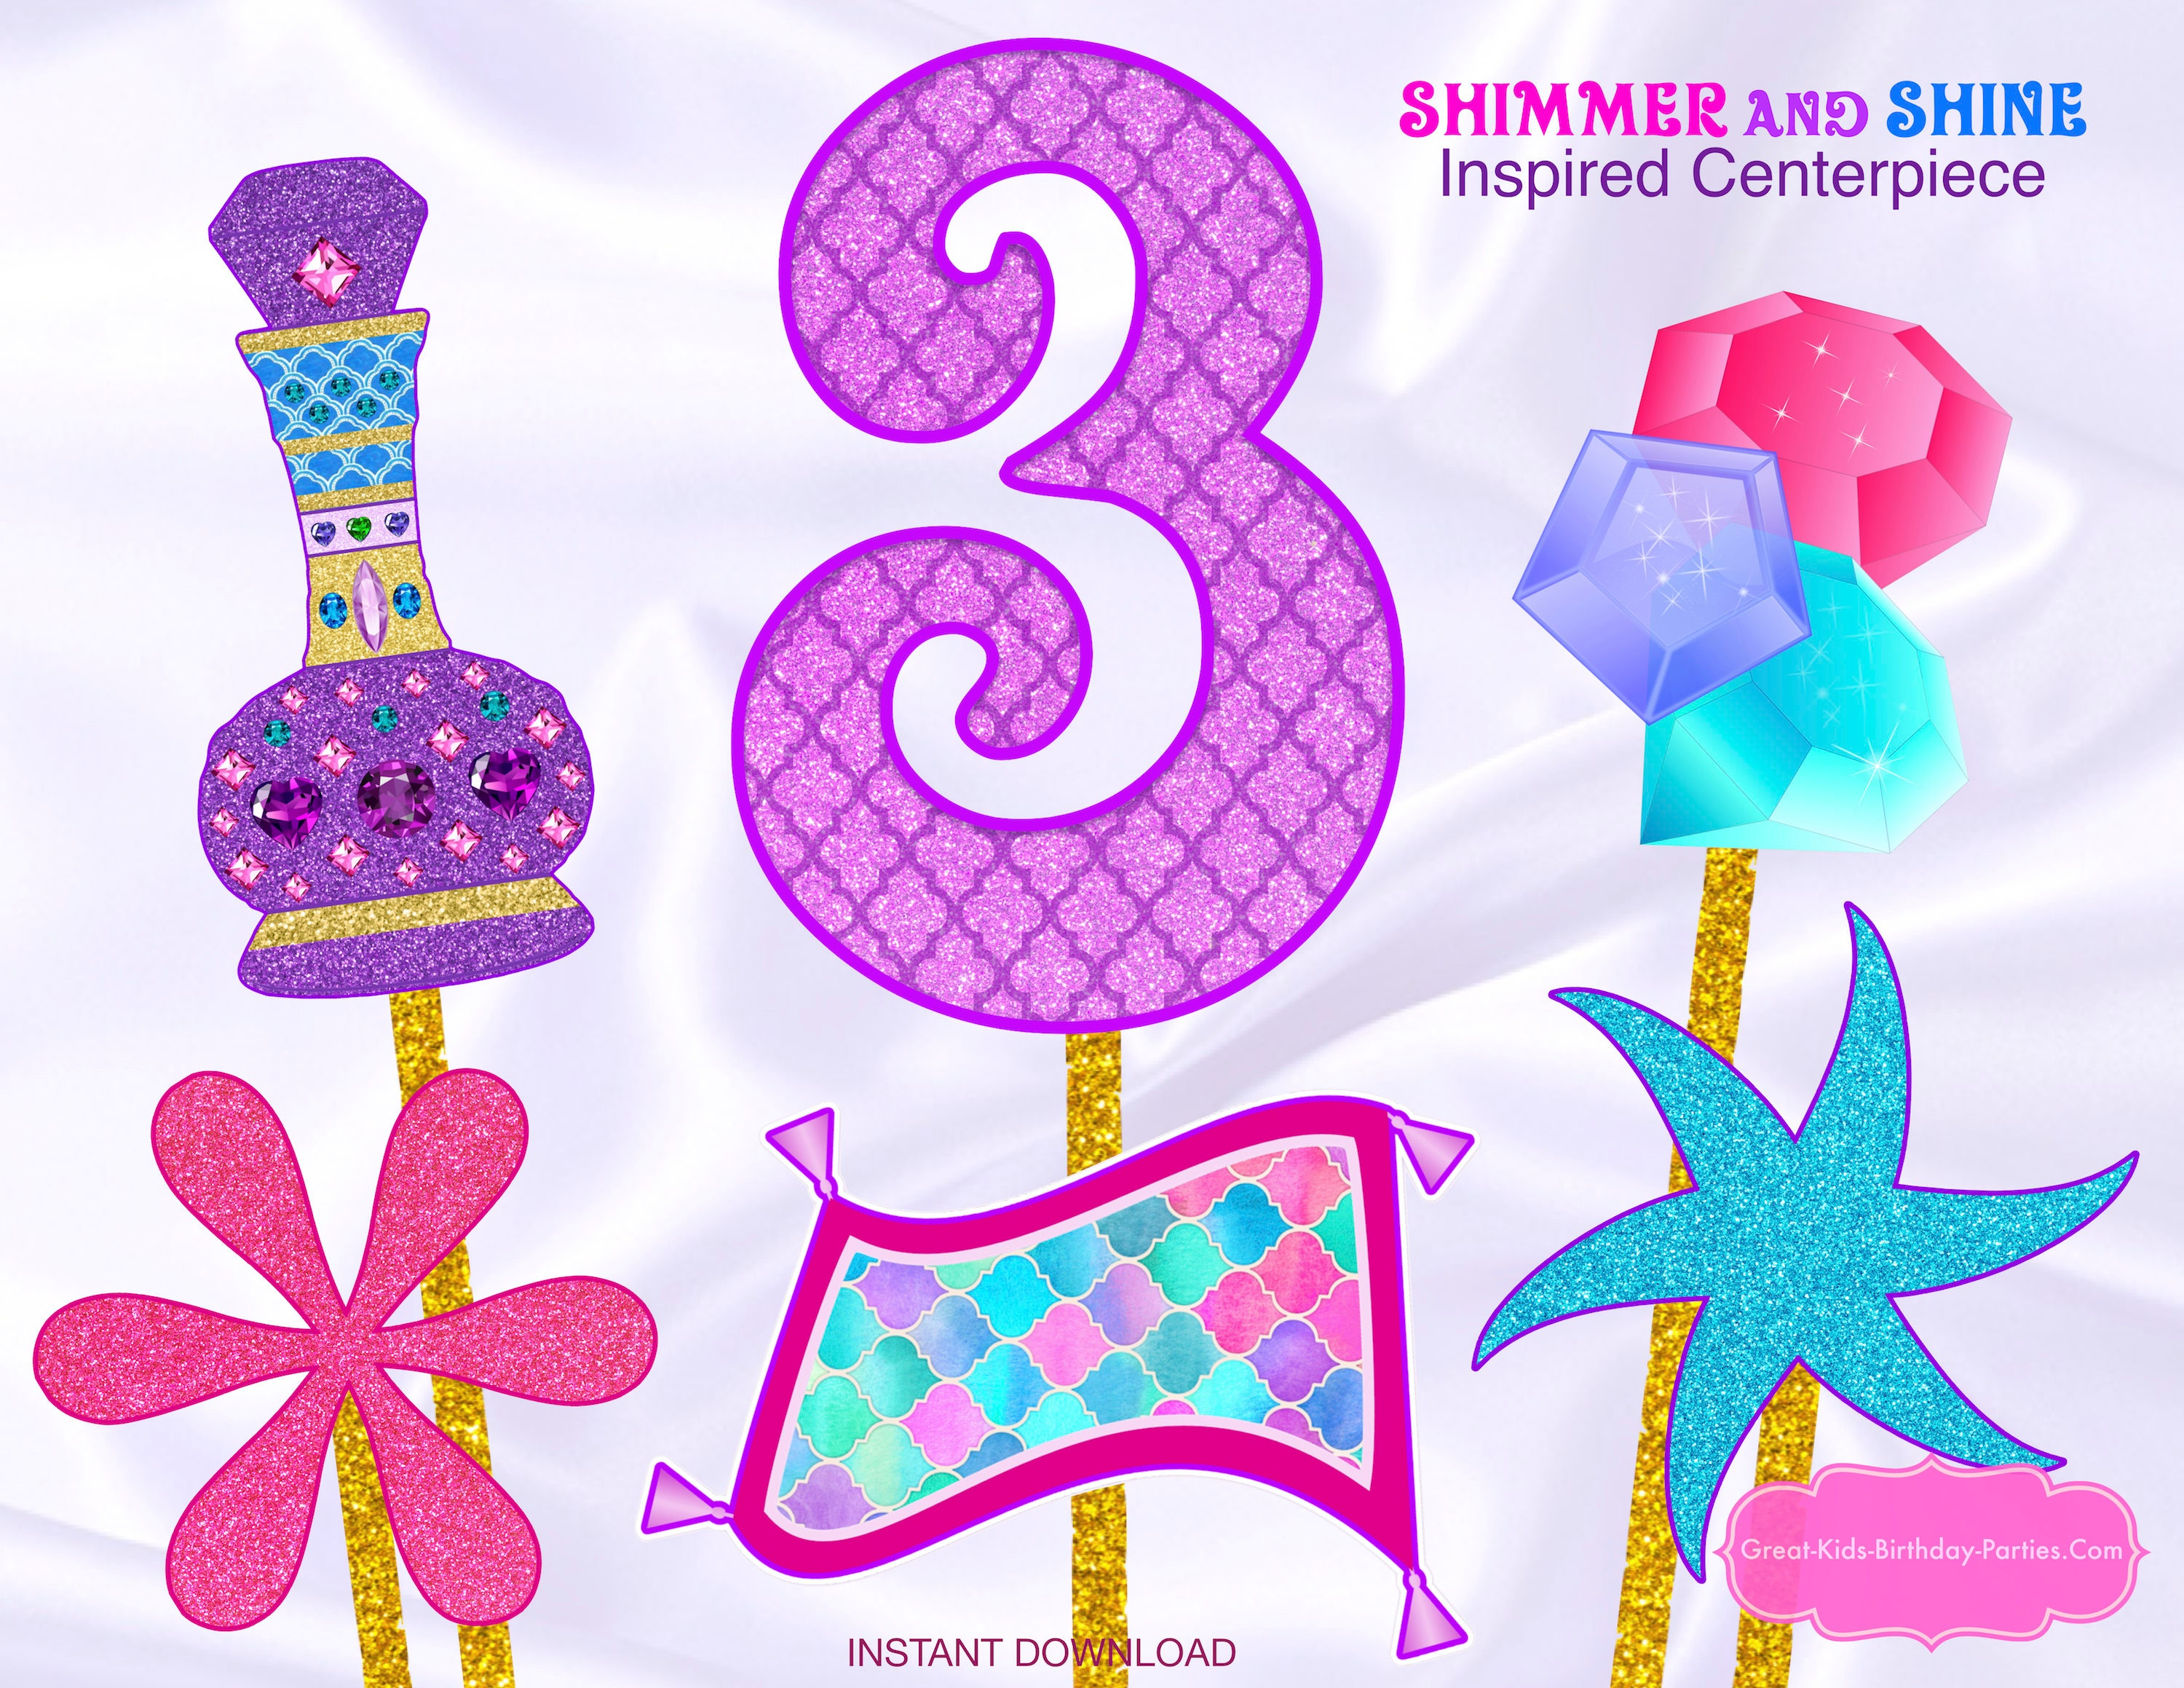 Shimmer and Shine Cumpleaños Shimmer and Shine Fiesta